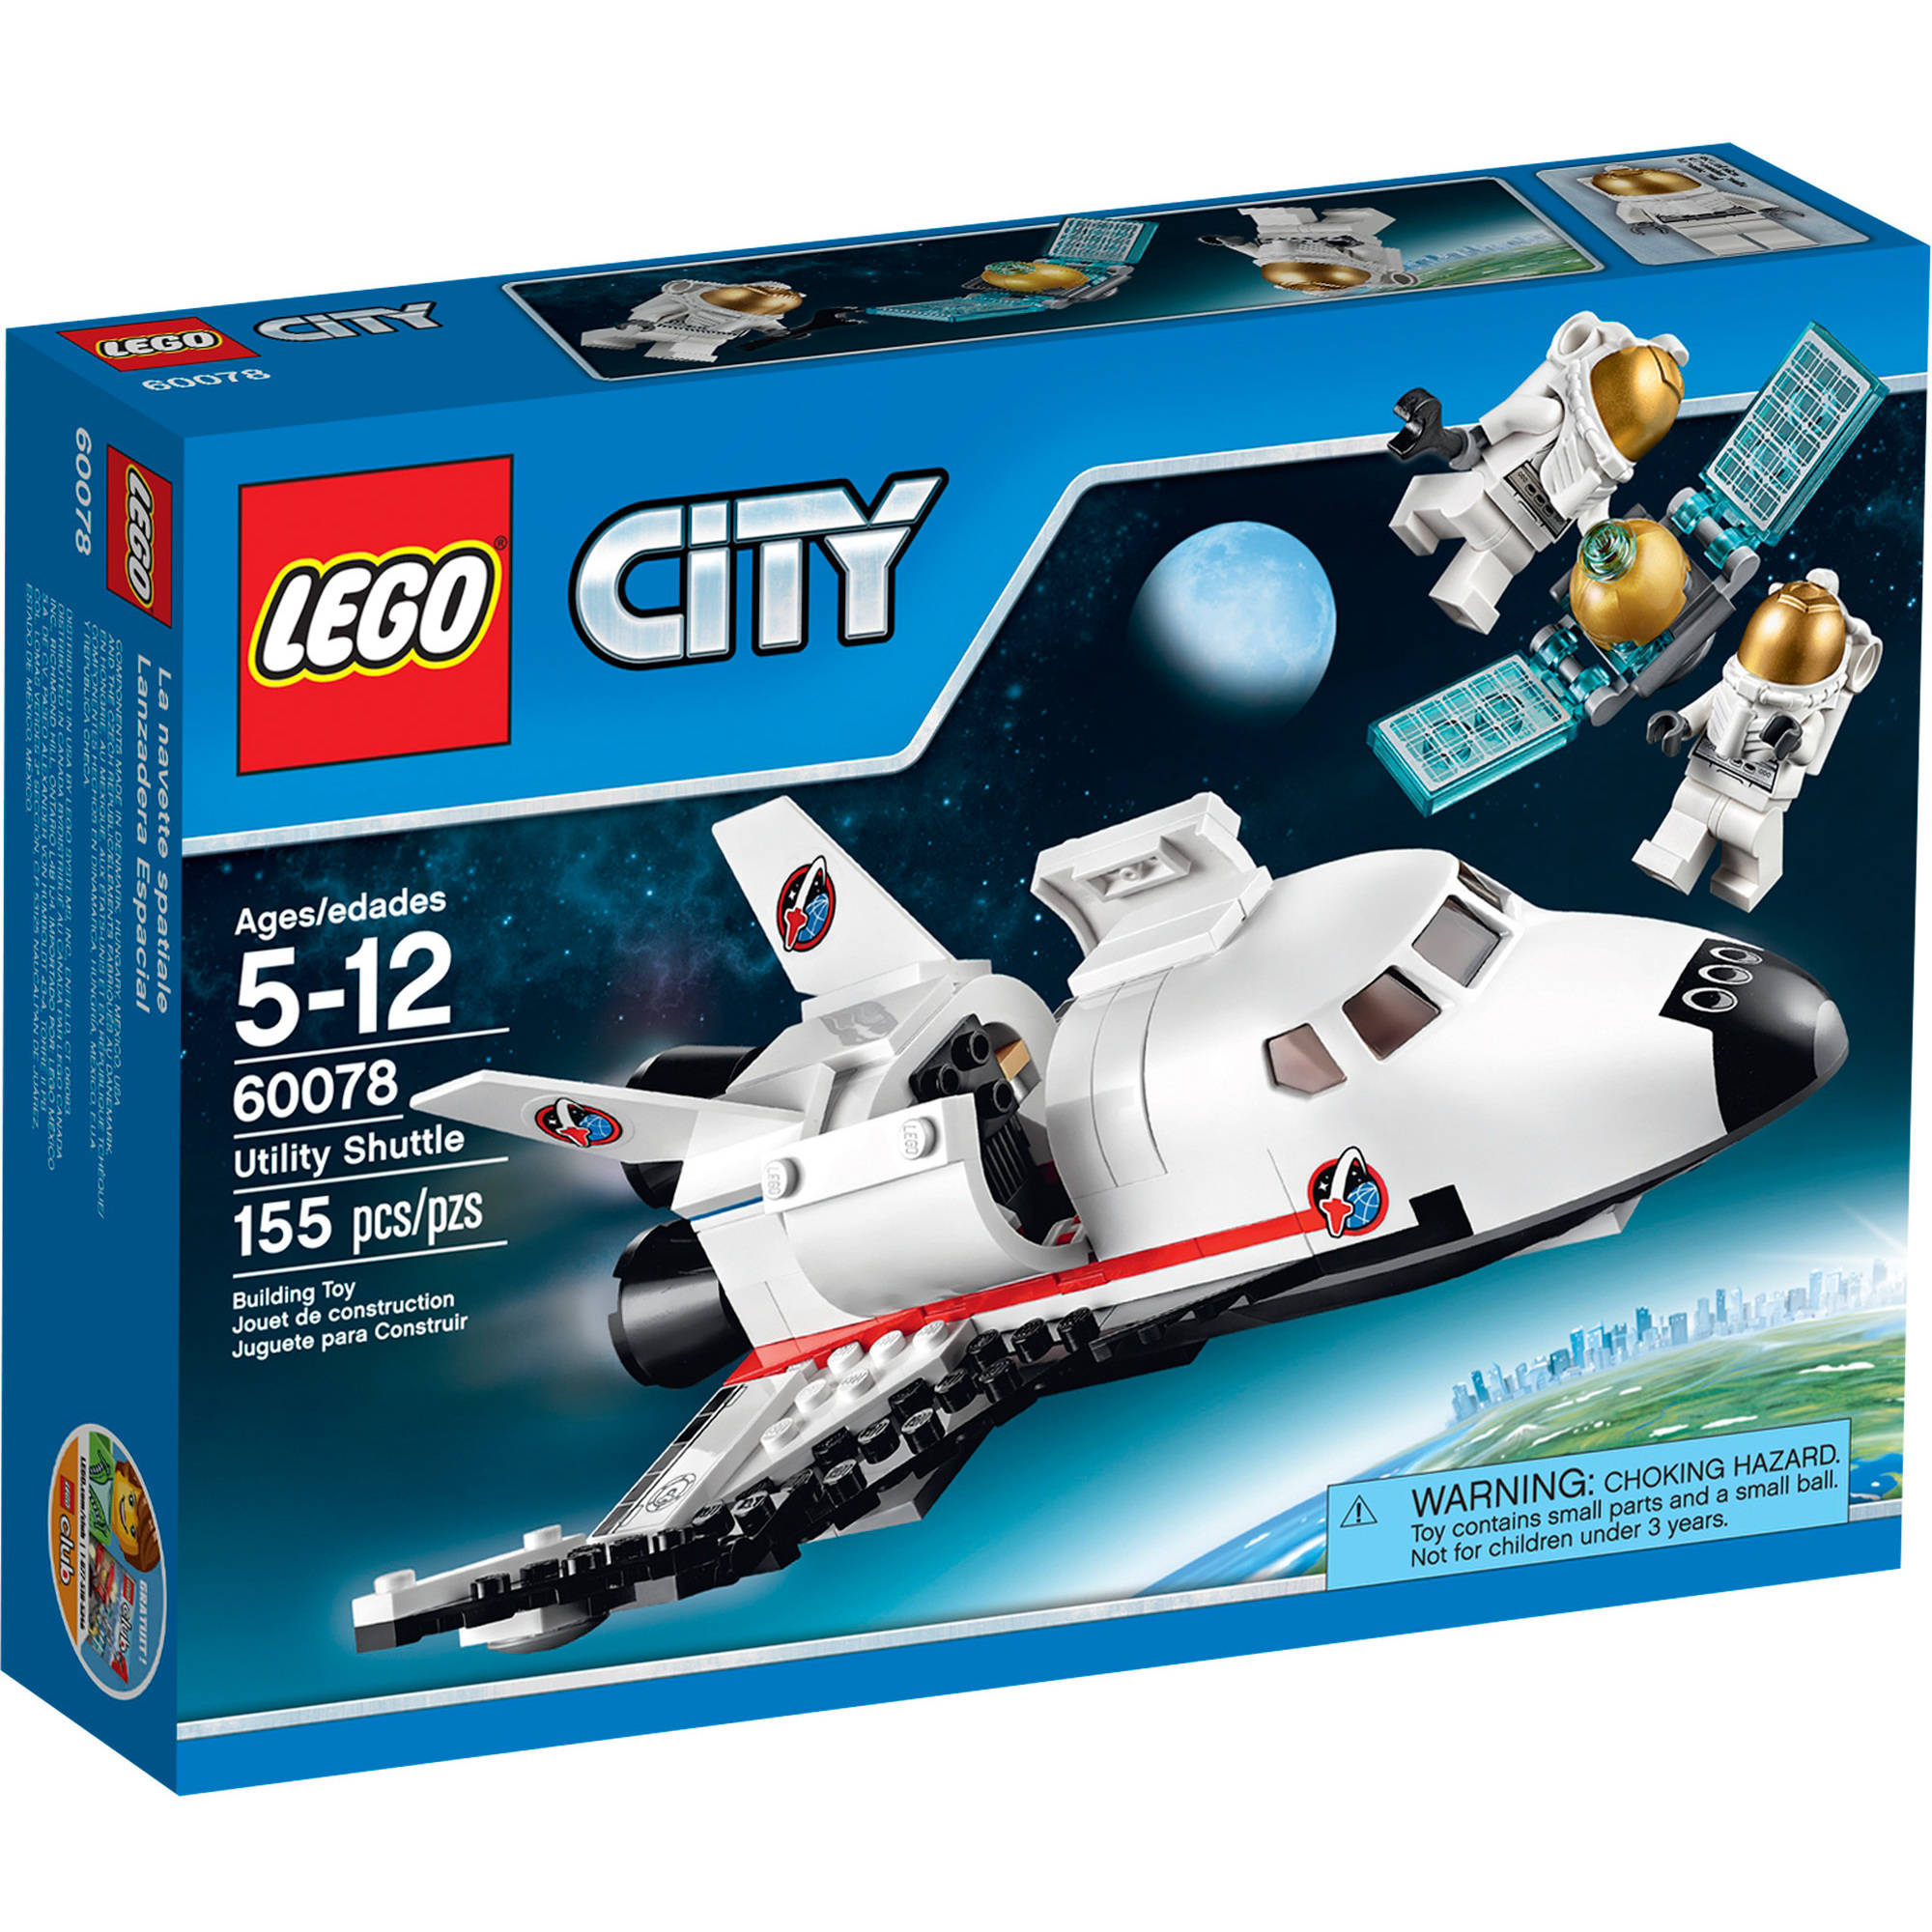 Lego City Space Port 60078 Utility Shuttle Building Kit by LEGO Systems, Inc.